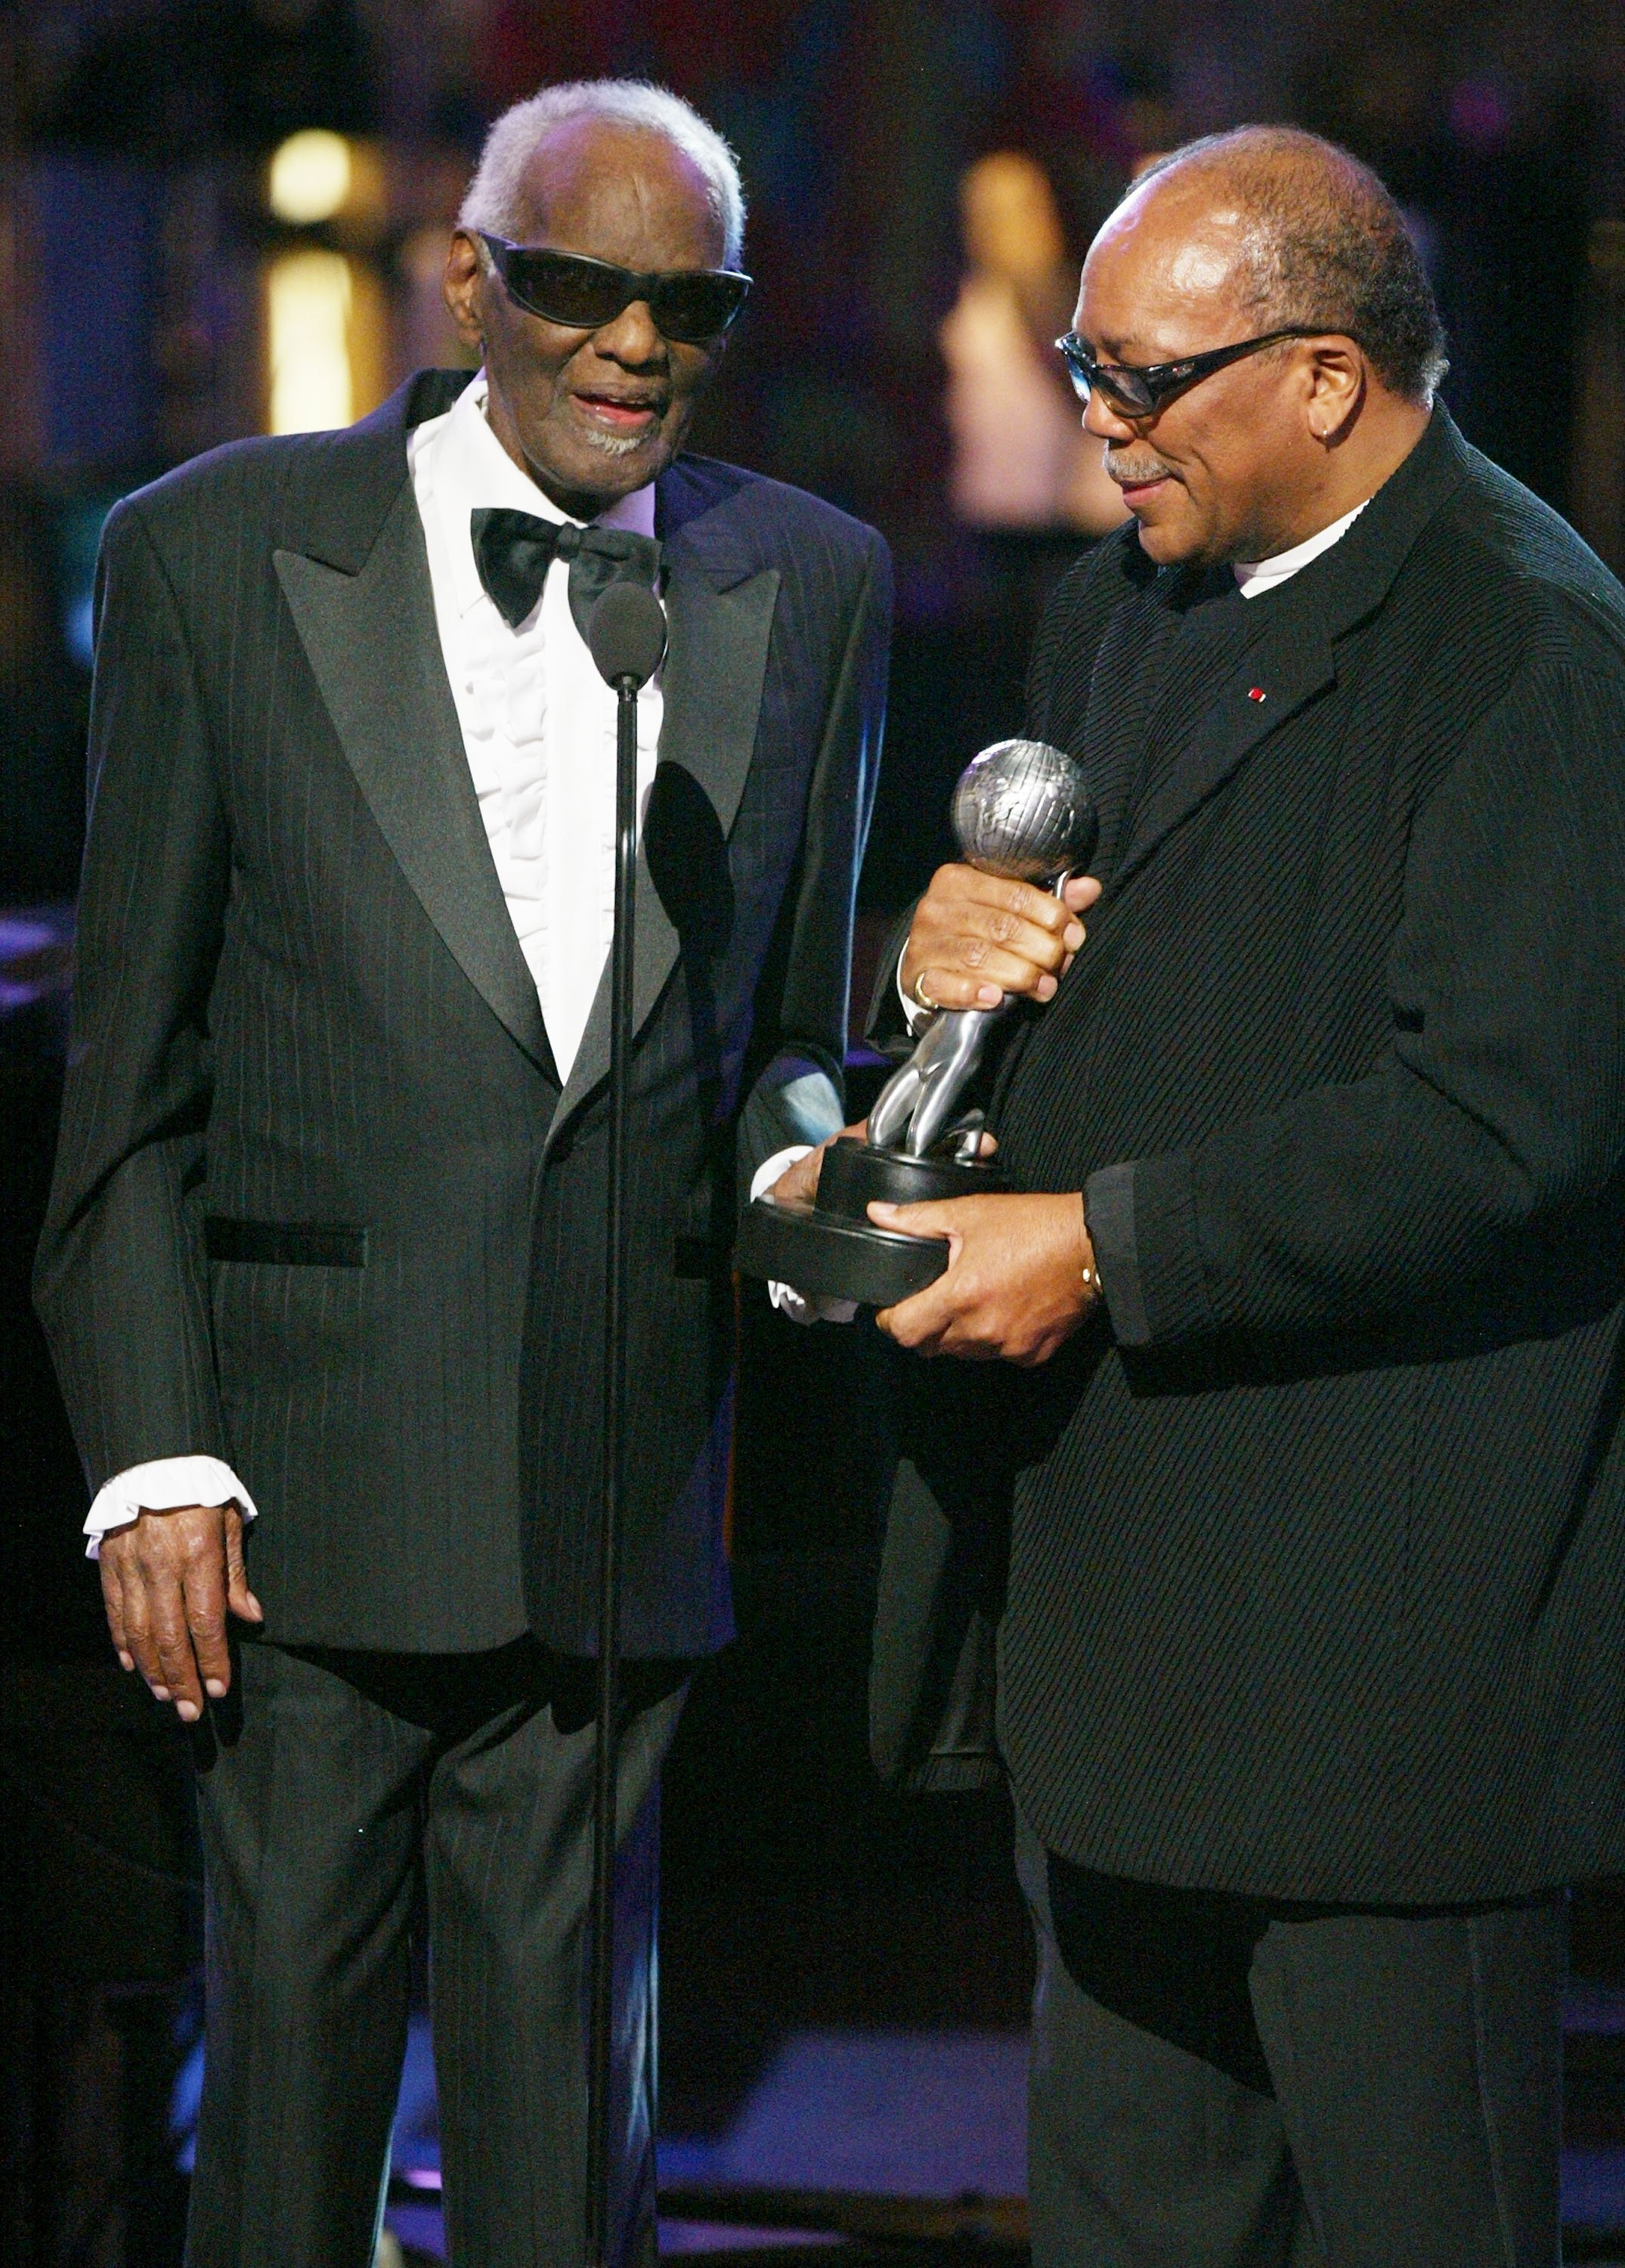 Ray Charles and producer Quincy Jones on stage at the 35th Annual NAACP Image Awards at the Universal Amphitheatre, March 6, 2004. | Source: Getty Images